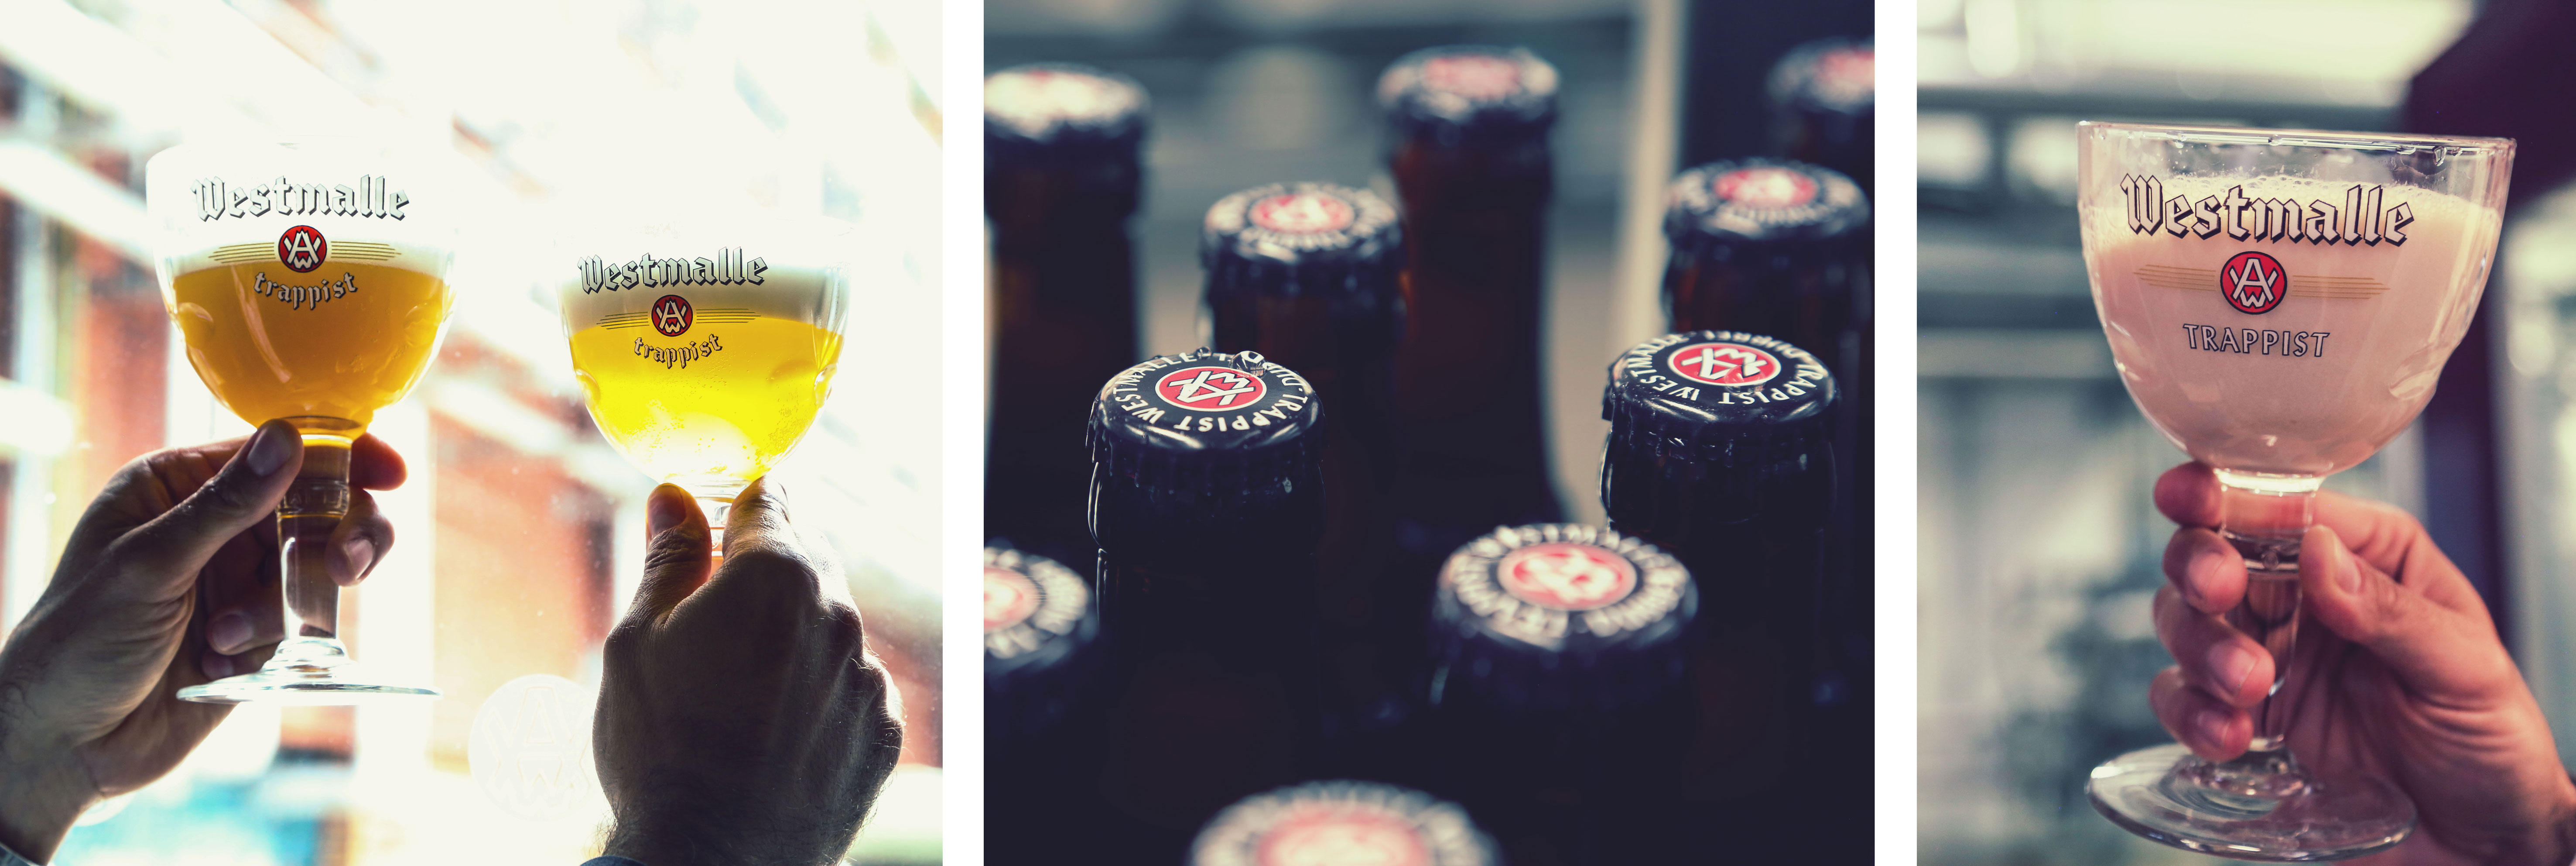 Westmalle-beer-and-yeast-collage